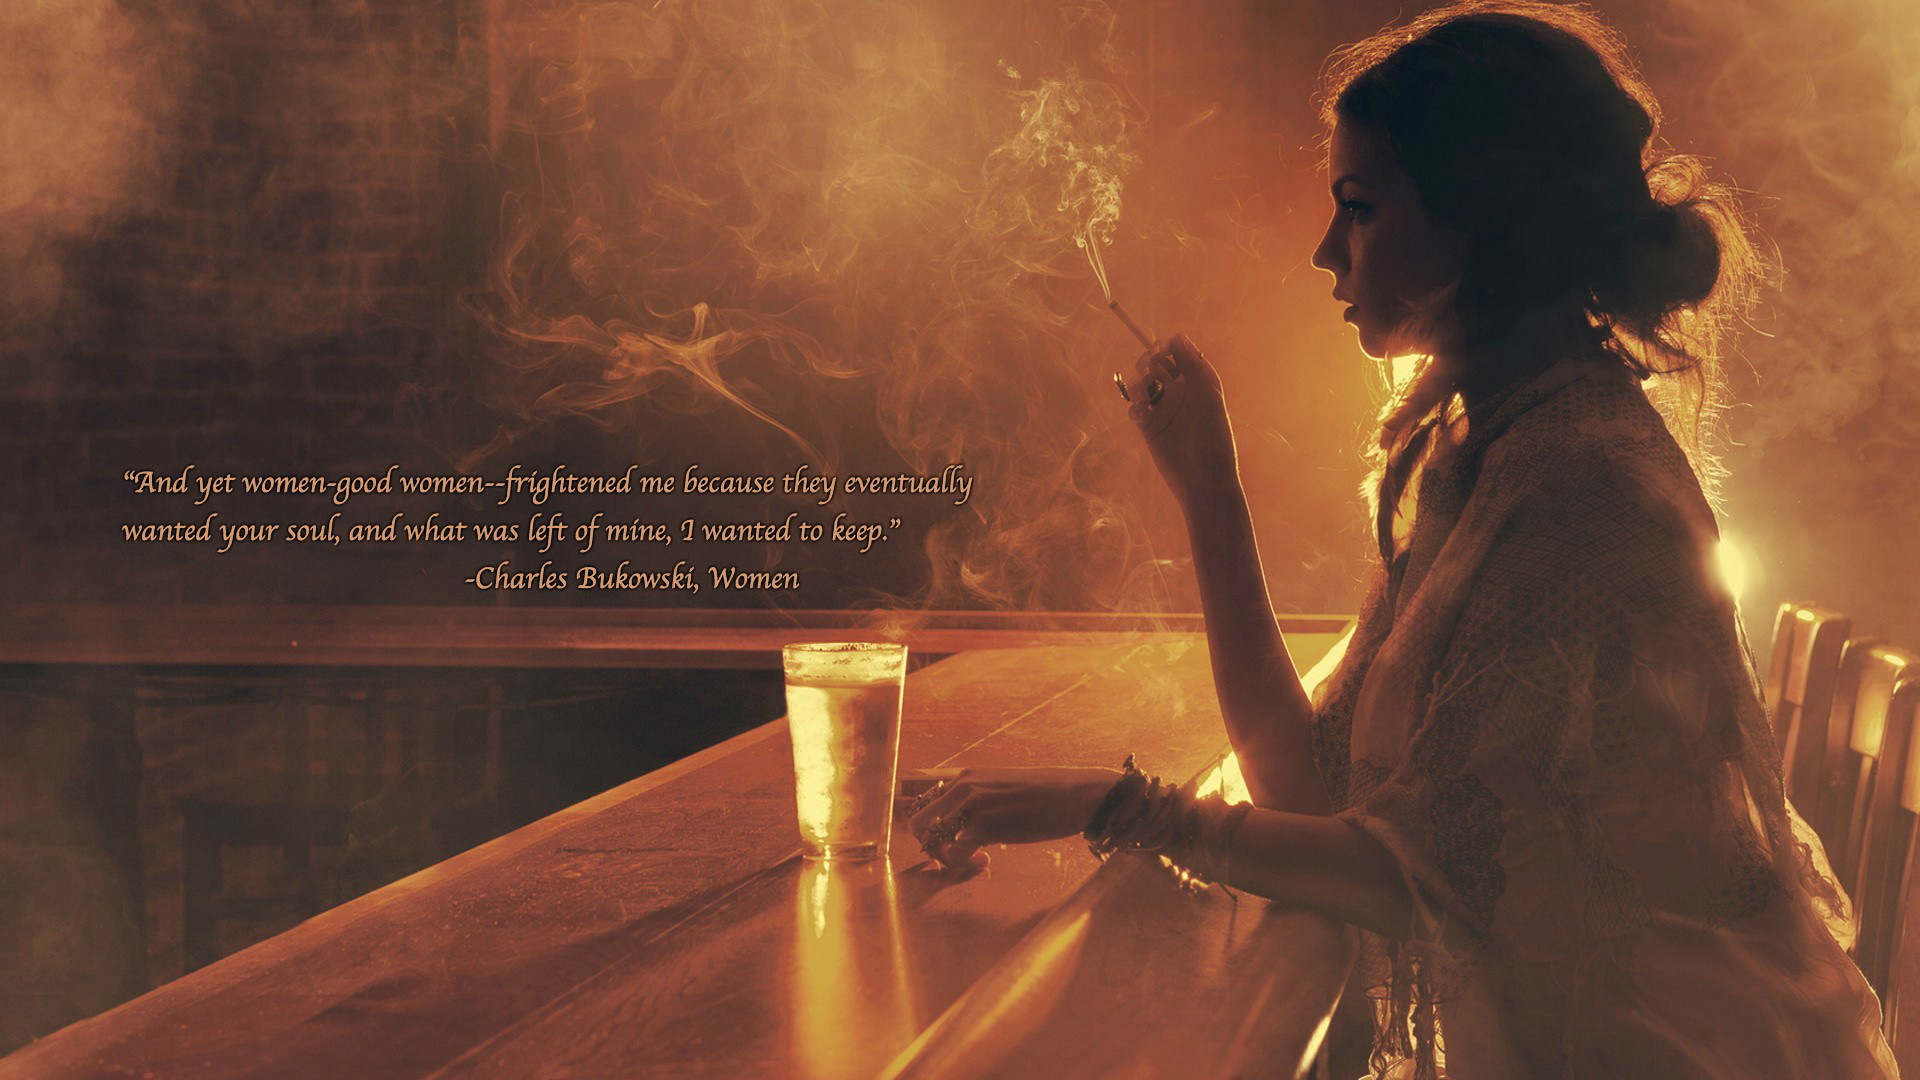 bdfeedbd-drink-bar-girl-wallpaper-wp3401445